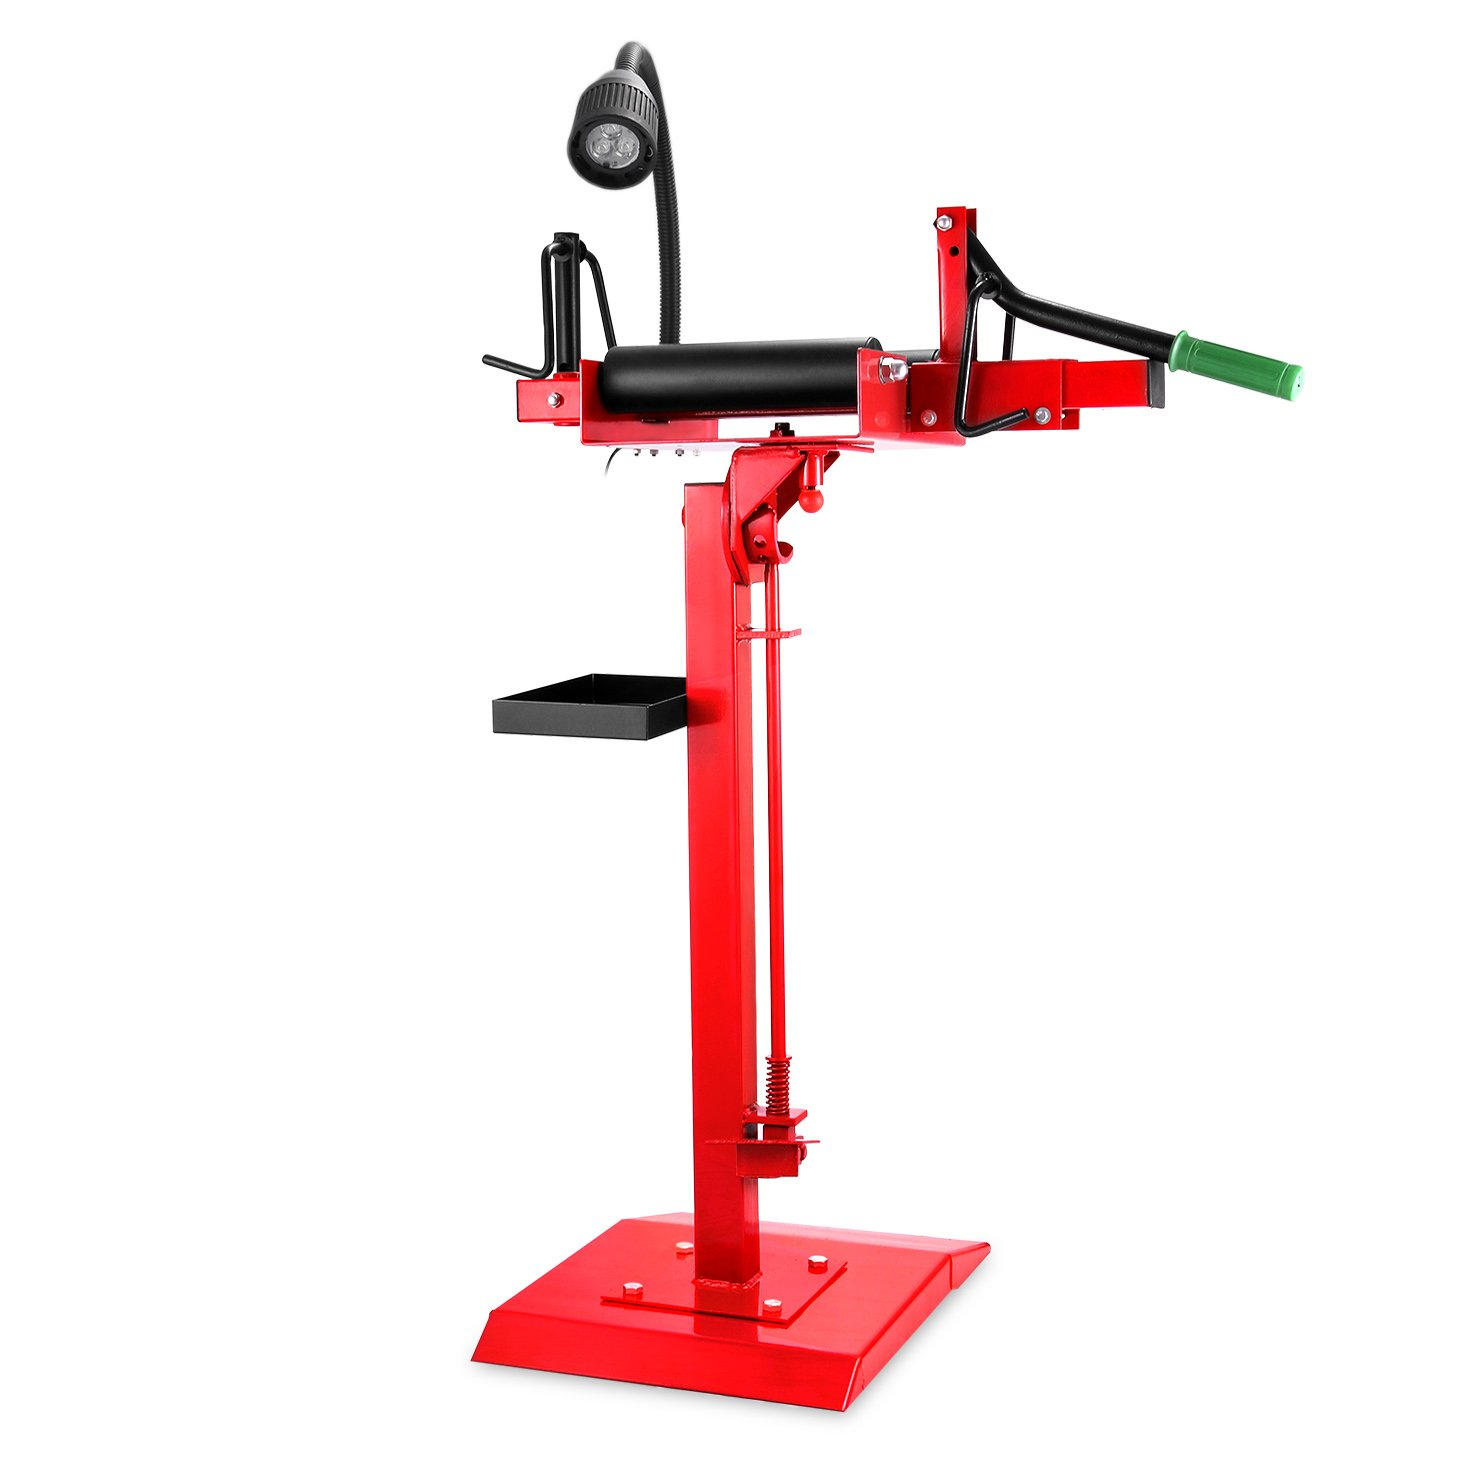 Mophorn Manual Tire Spreader Portable Tire Changer with Stand Adjustable LED Light Tire Spreader Tool for Light Truck and Car